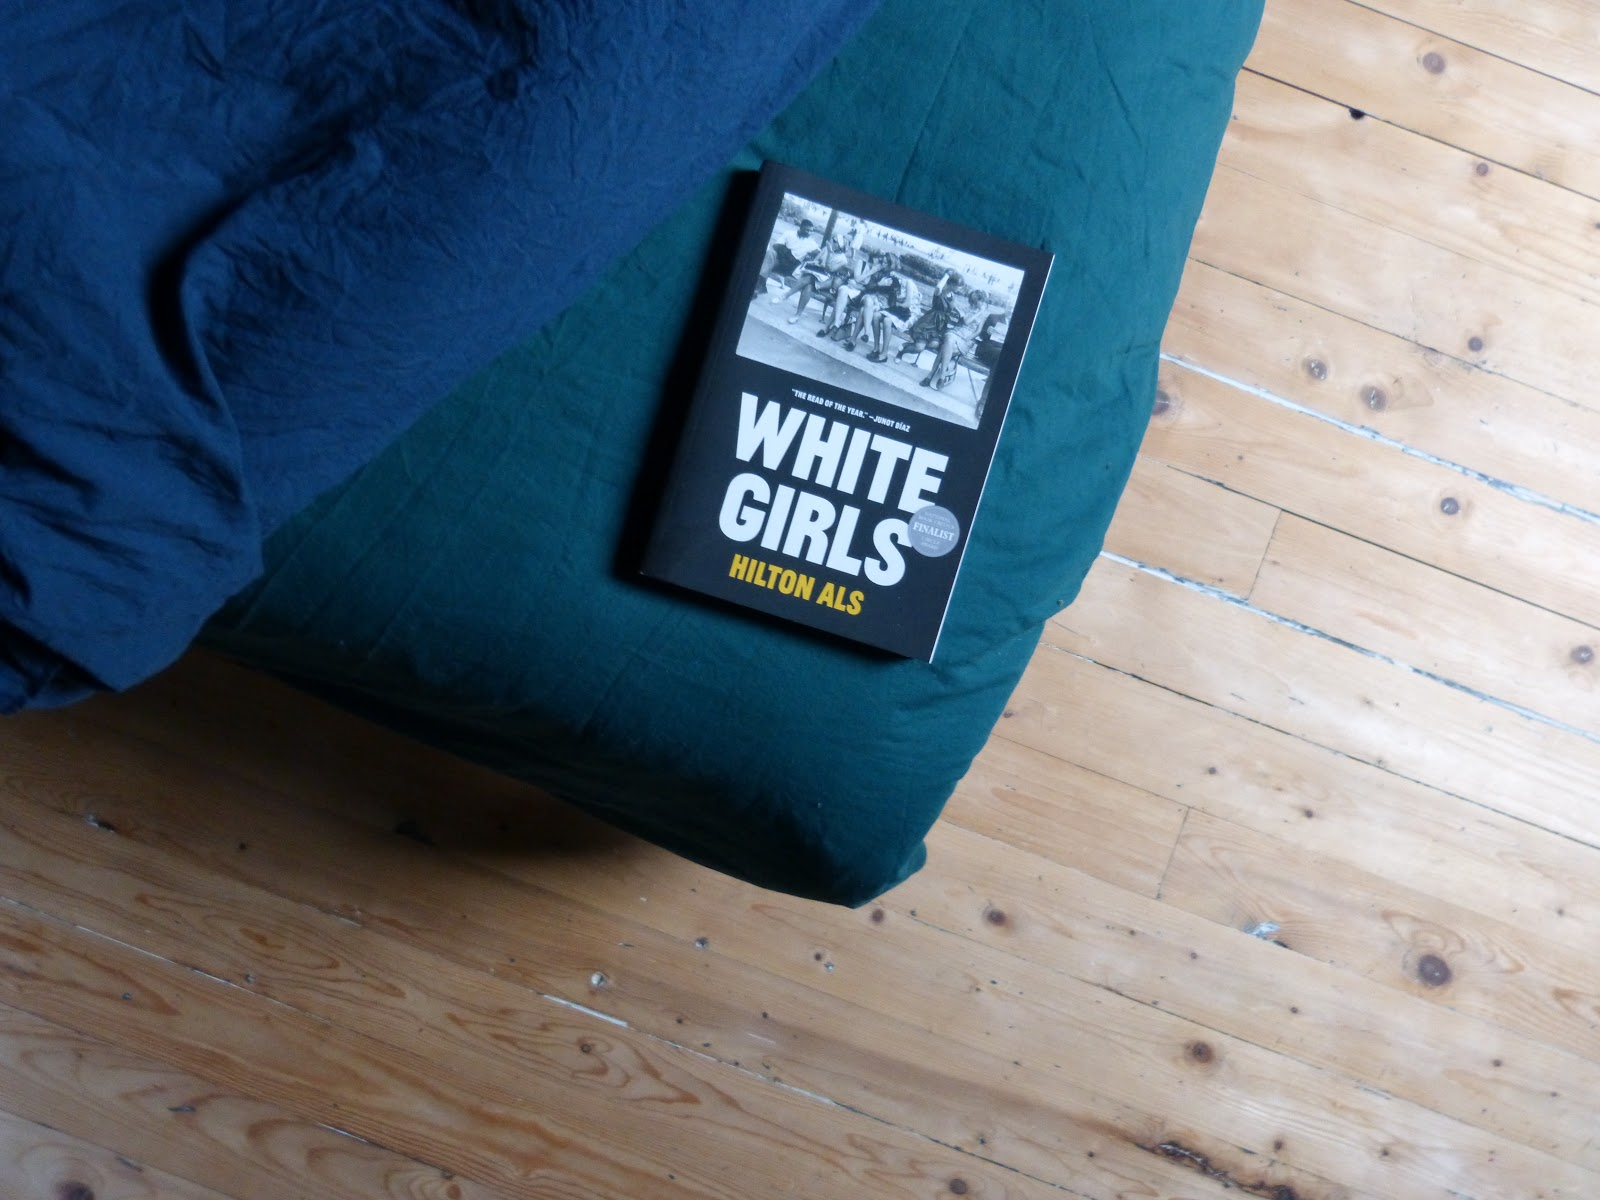 The picture shows the corner of a bed, covered in a green sheet and with a blue sheet folded over. On the 'exposed' green sheet lies a book (White Girls by Hilton Als). The rest of the picture shows the wooden floor the bed is standing on.